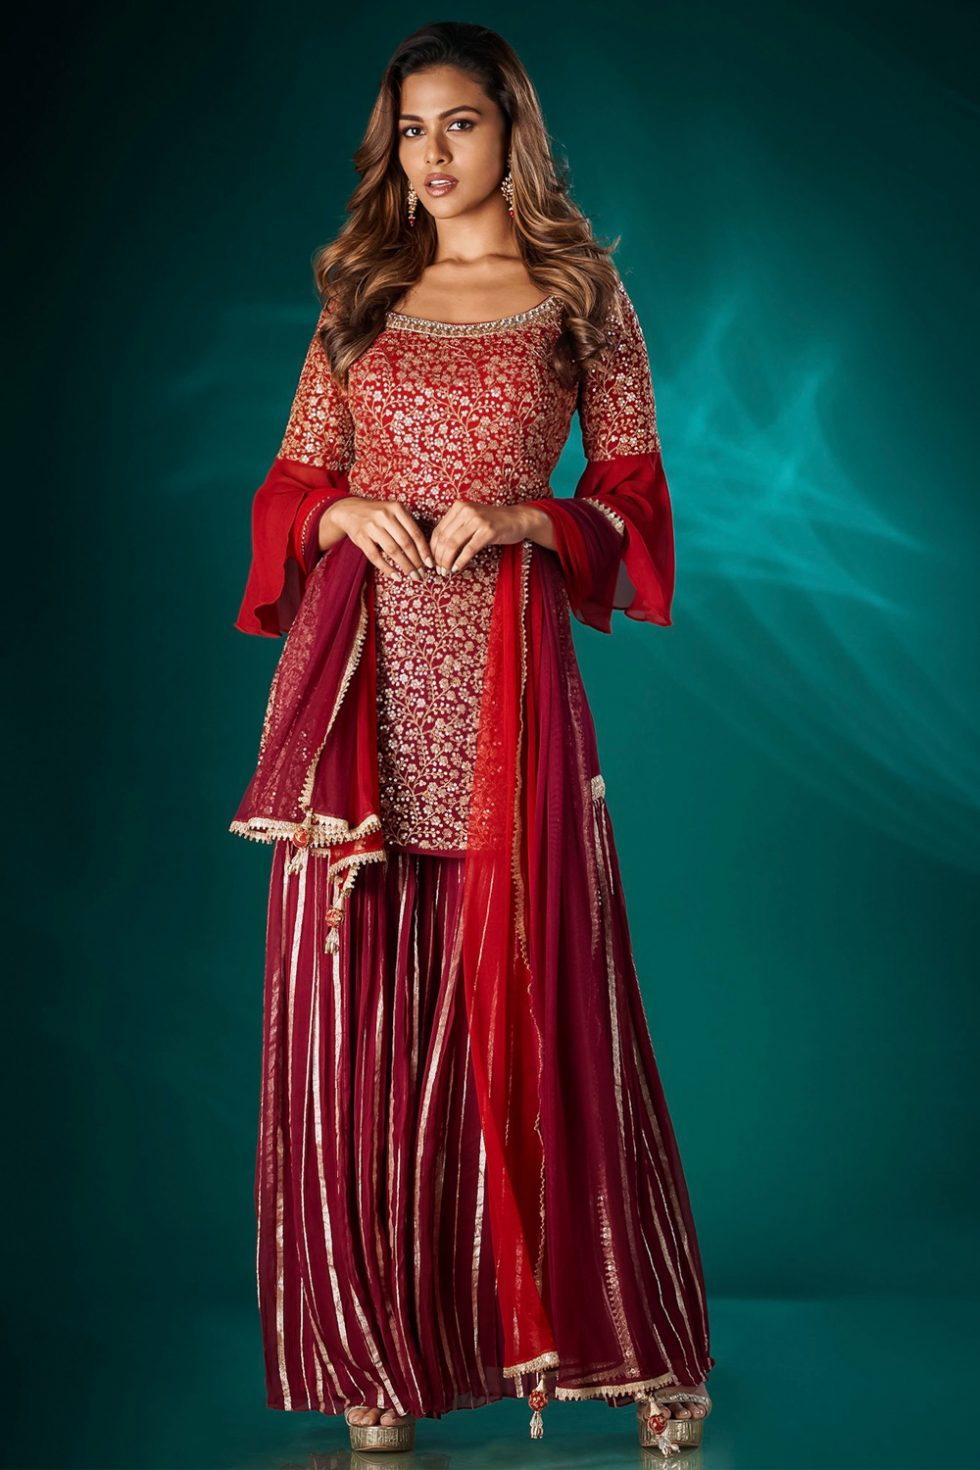 Maroon red chikan kurta top with a single tier patterned sharara pant paired with a matching dupatta and gold embellishments.